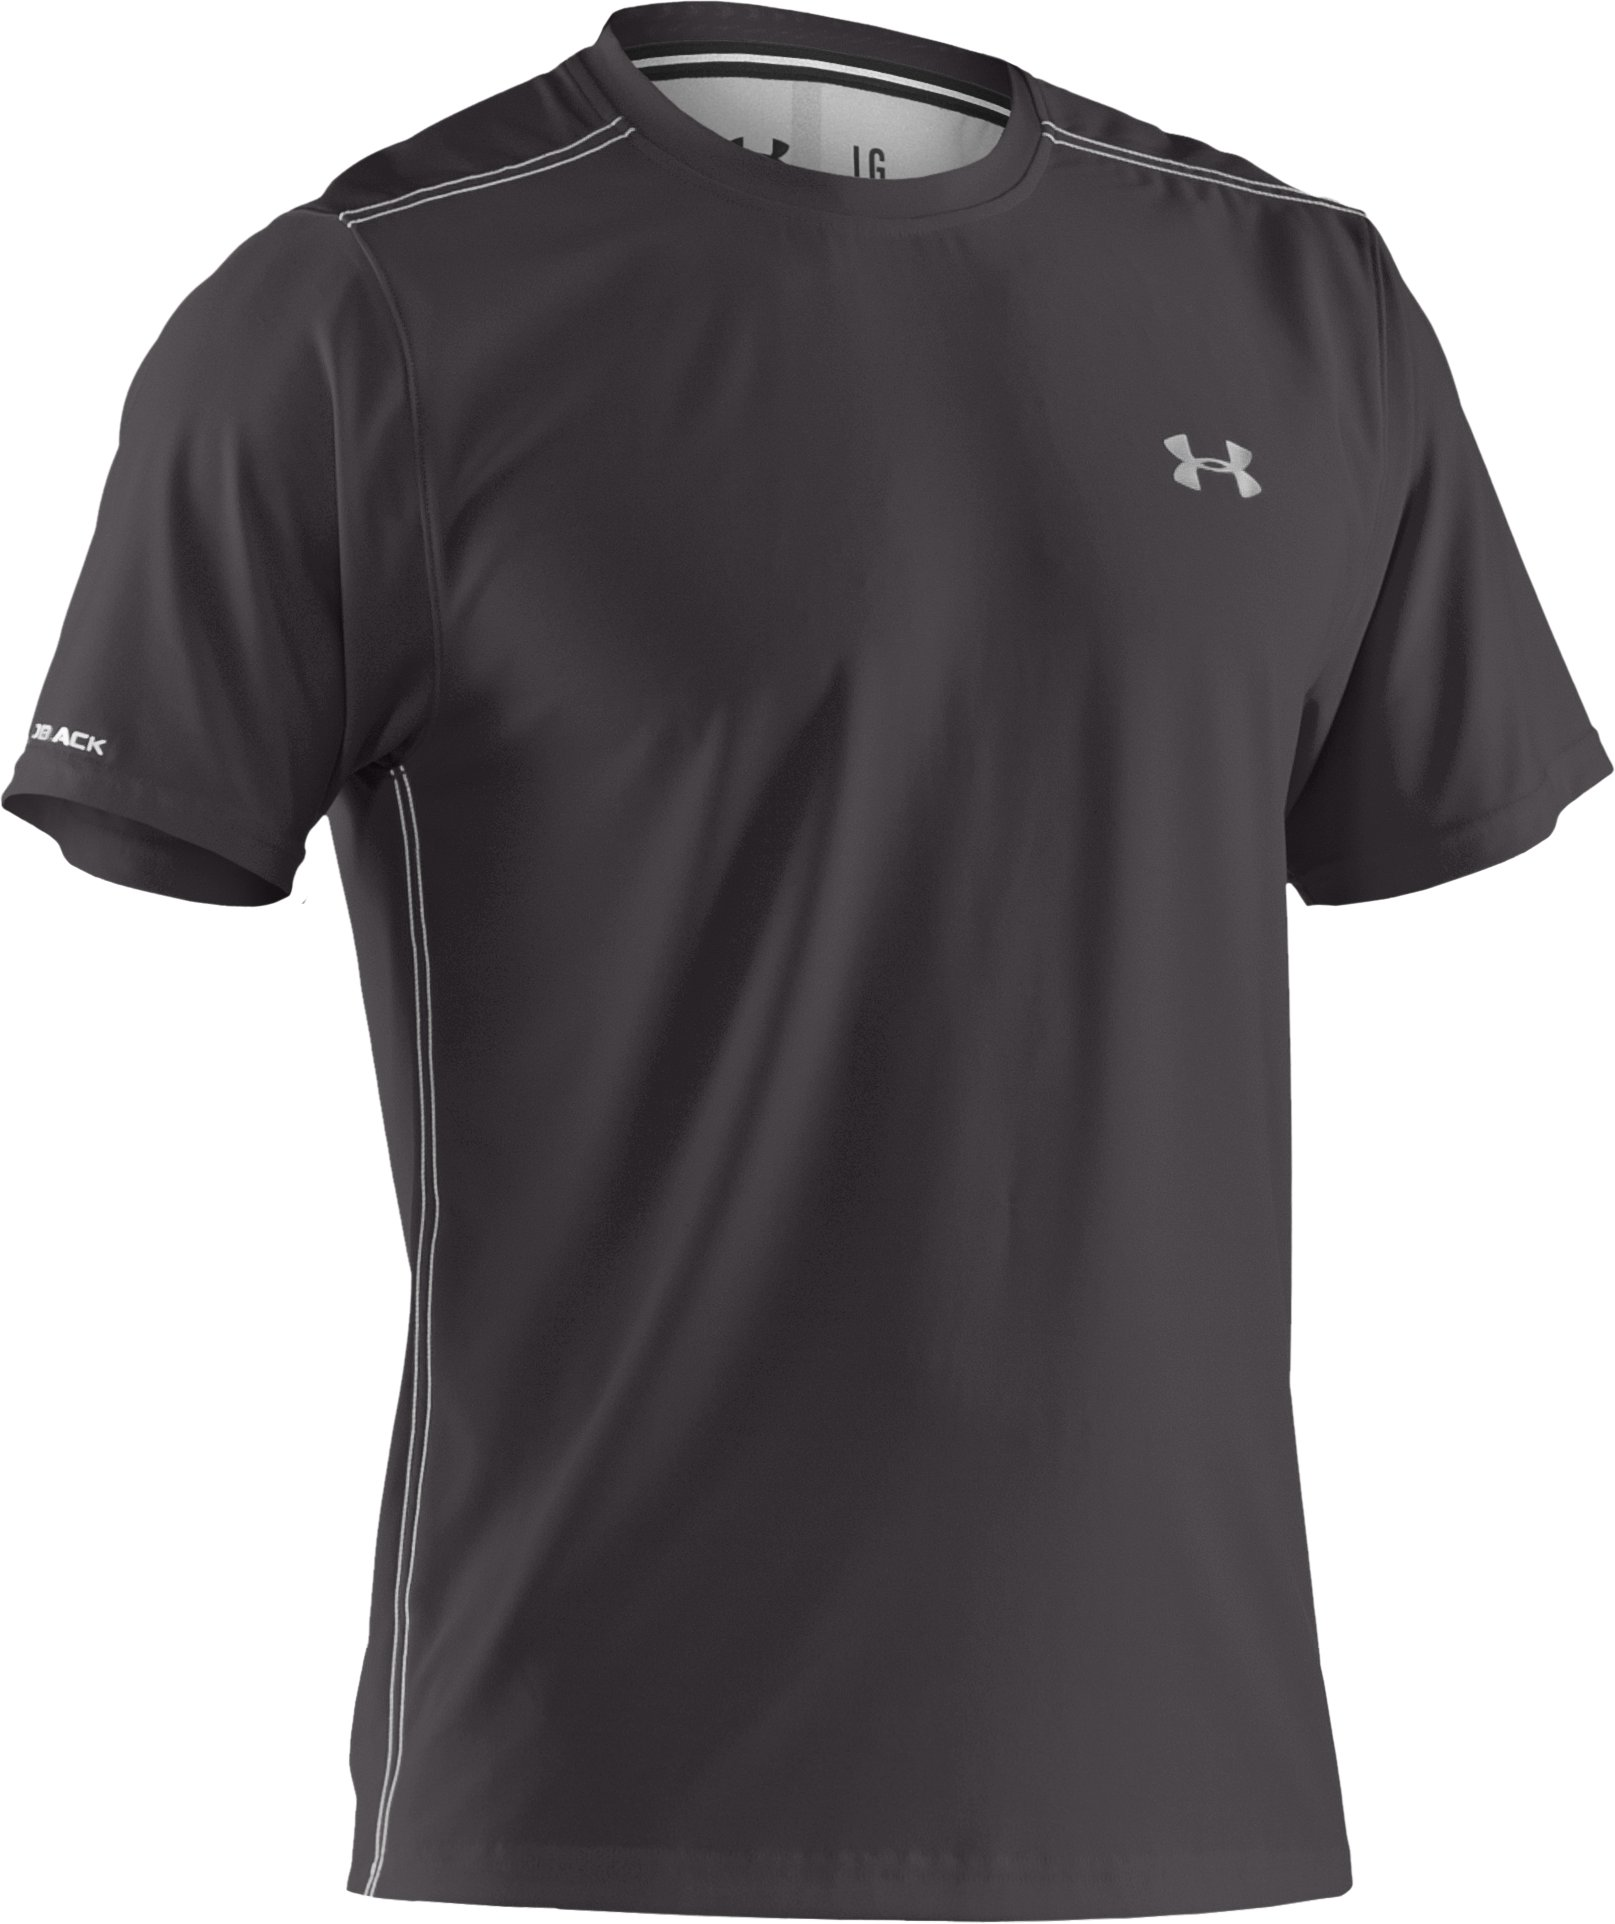 Men's coldblack® Short Sleeve T-Shirt, Charcoal